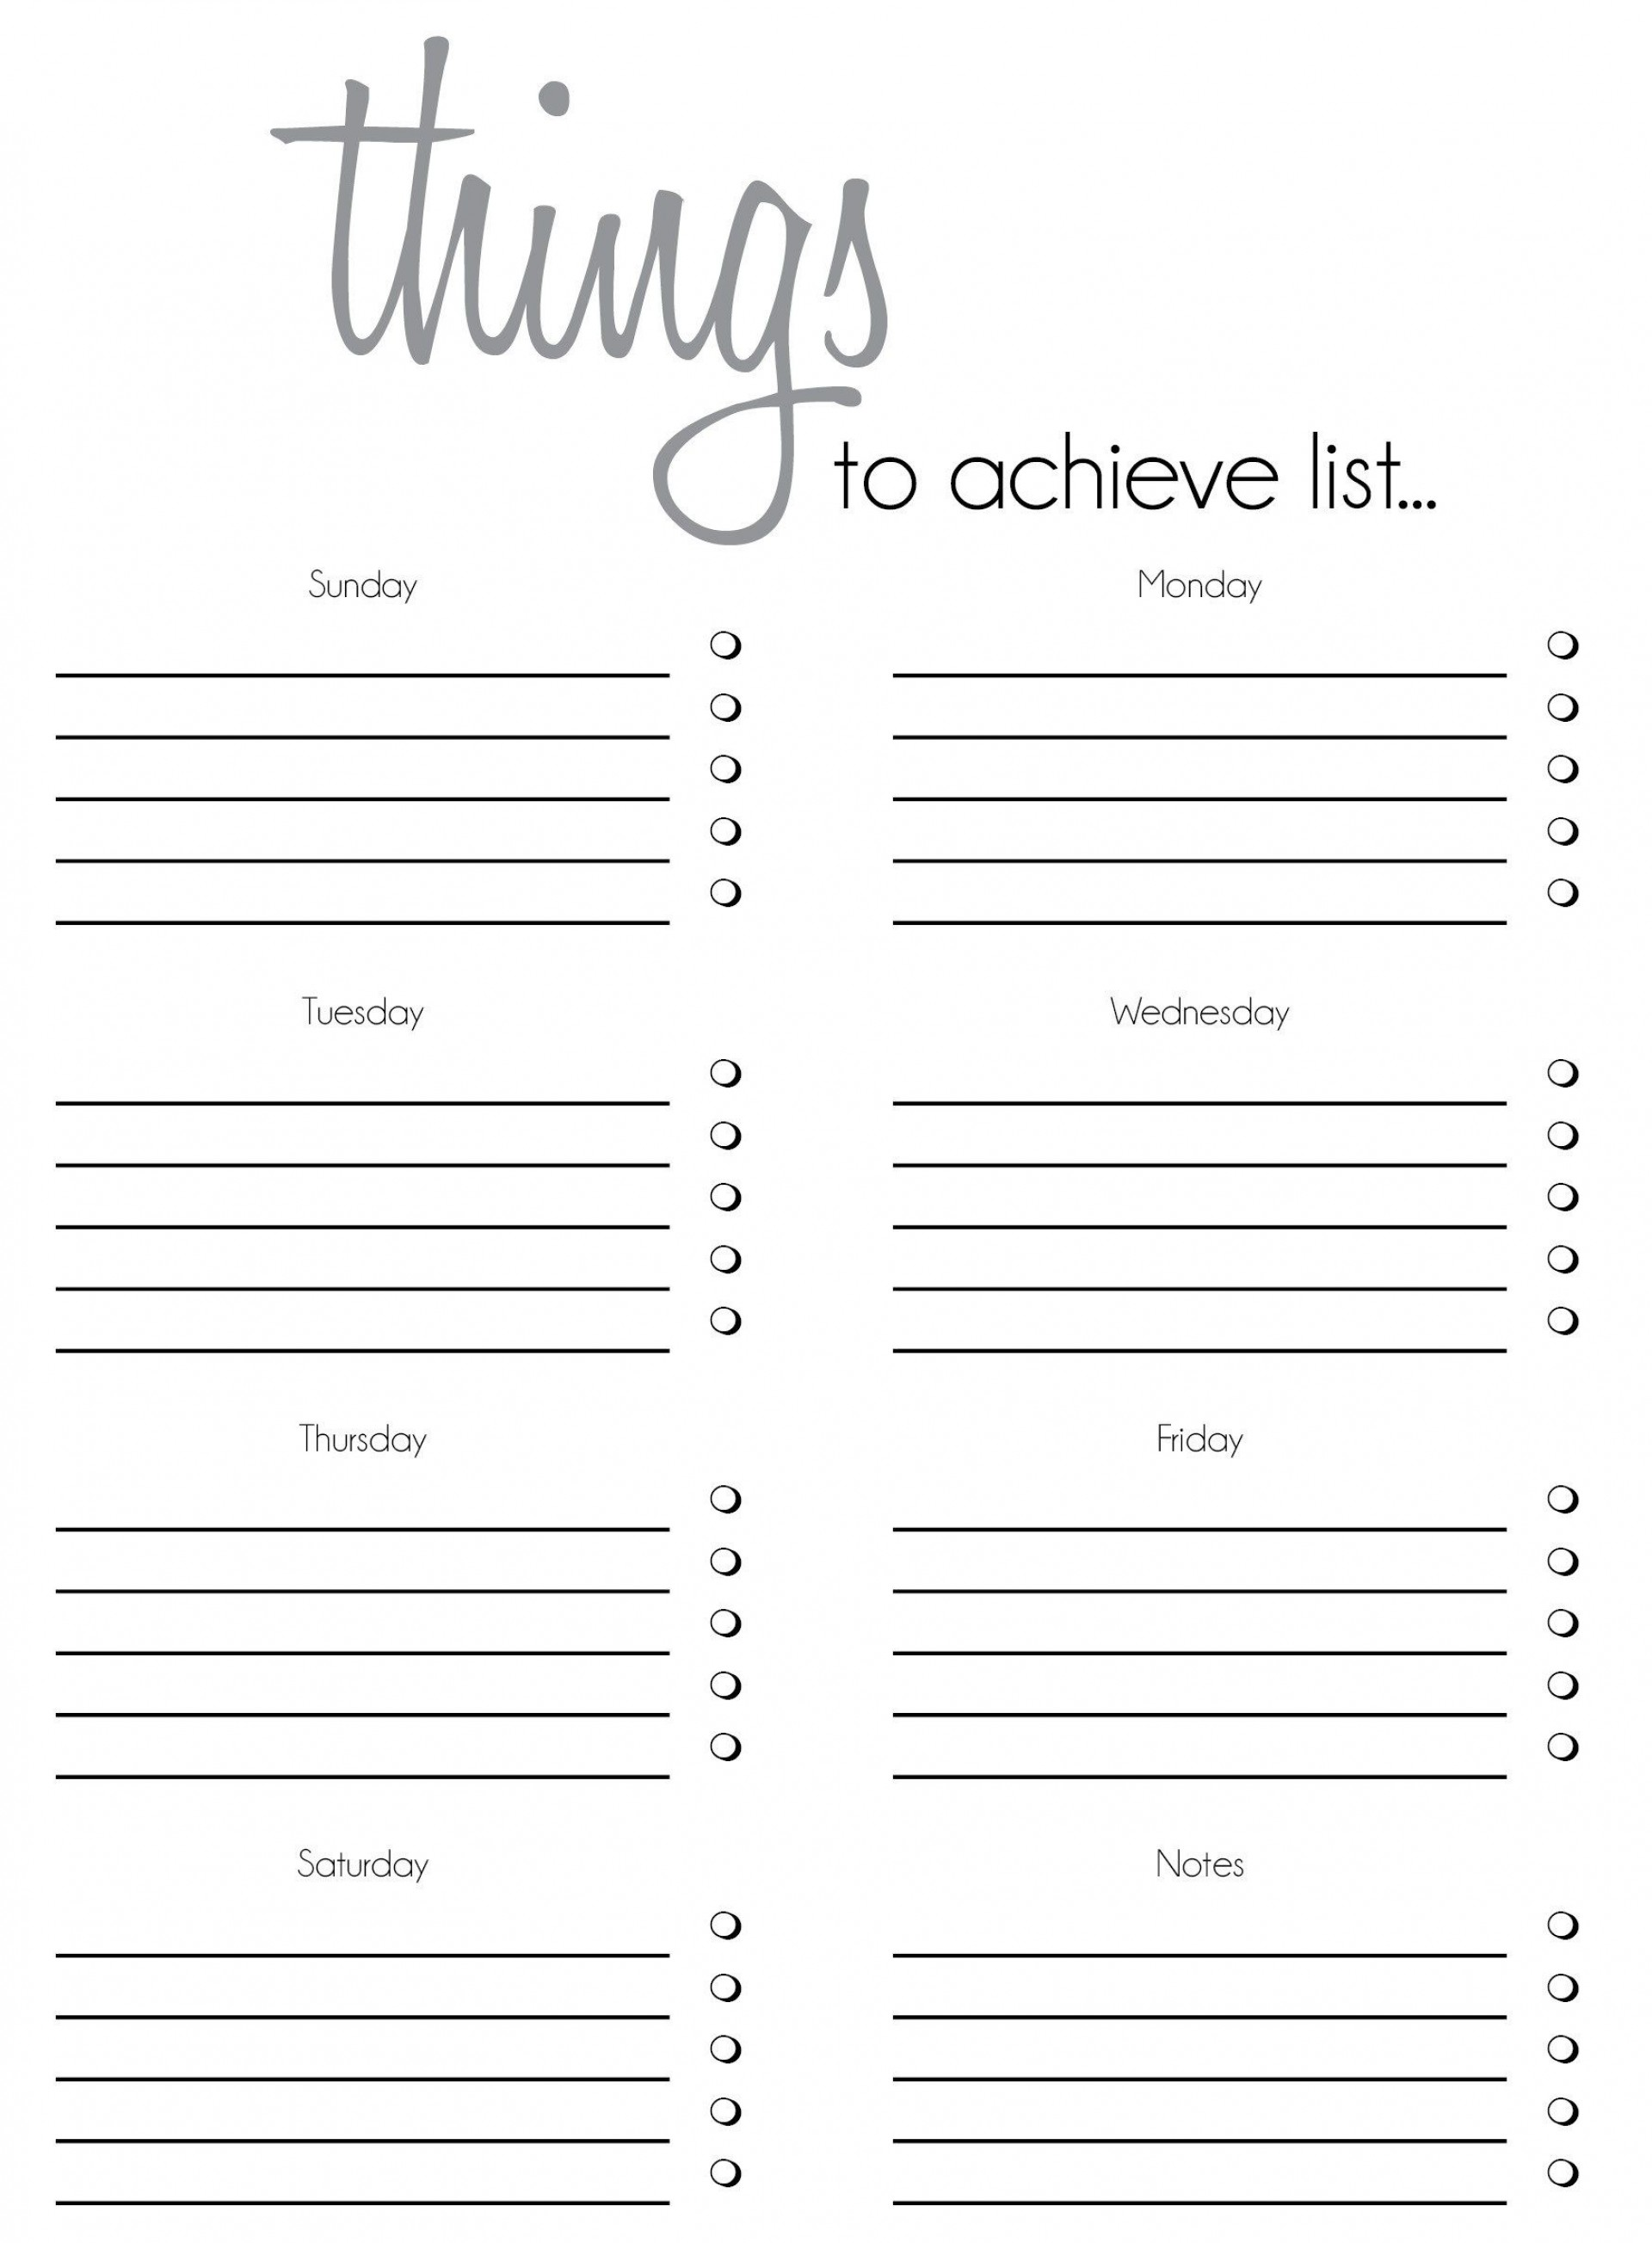 010 Outstanding Thing To Do List Template Example 1920